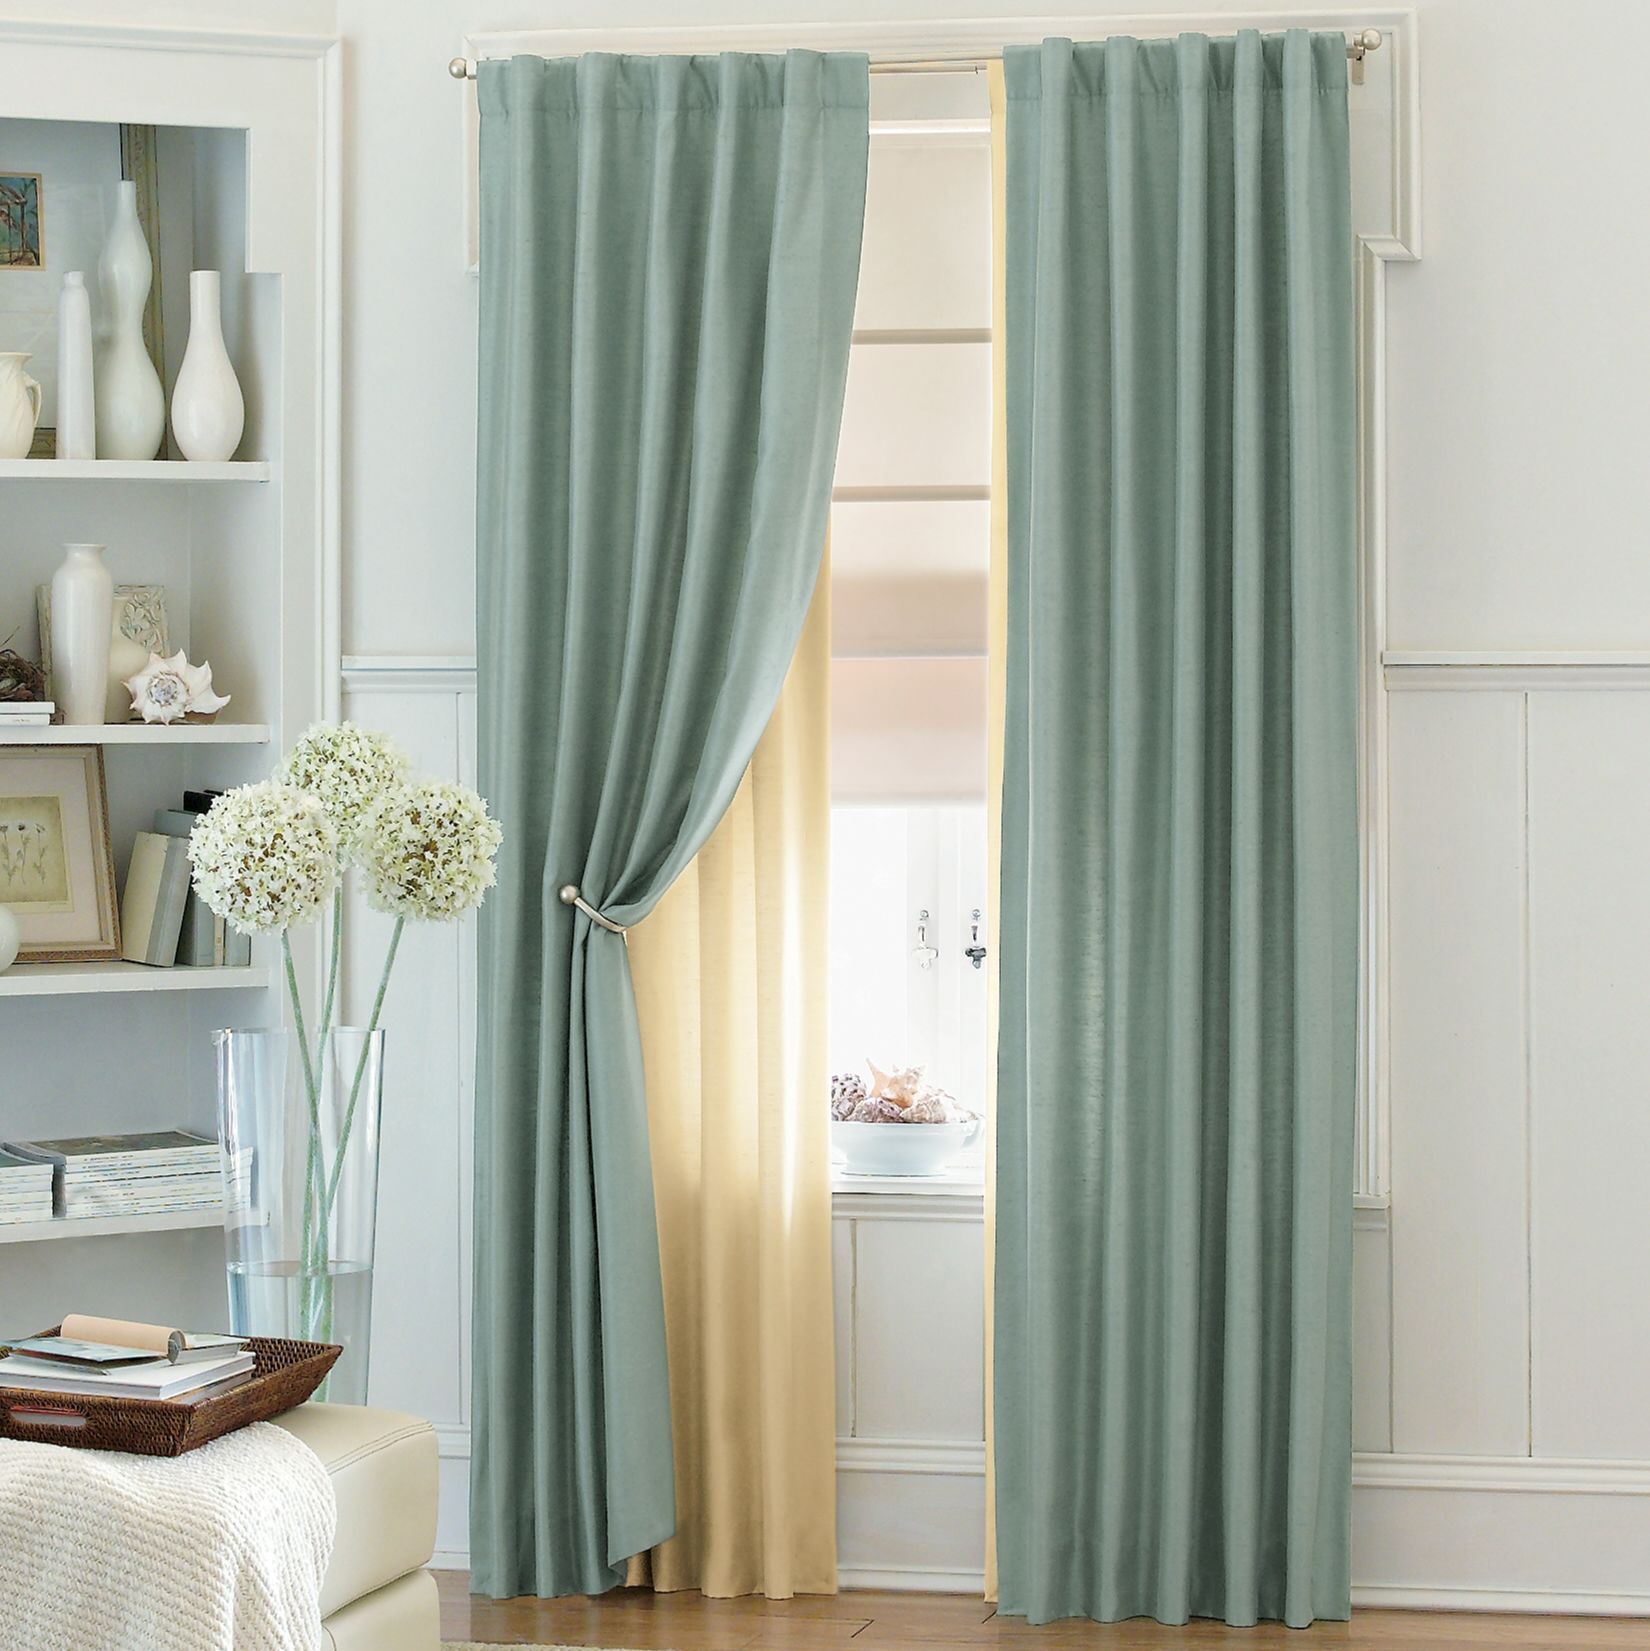 Awe inspiring grey double bedroom curtains with single for Window valances for bedroom